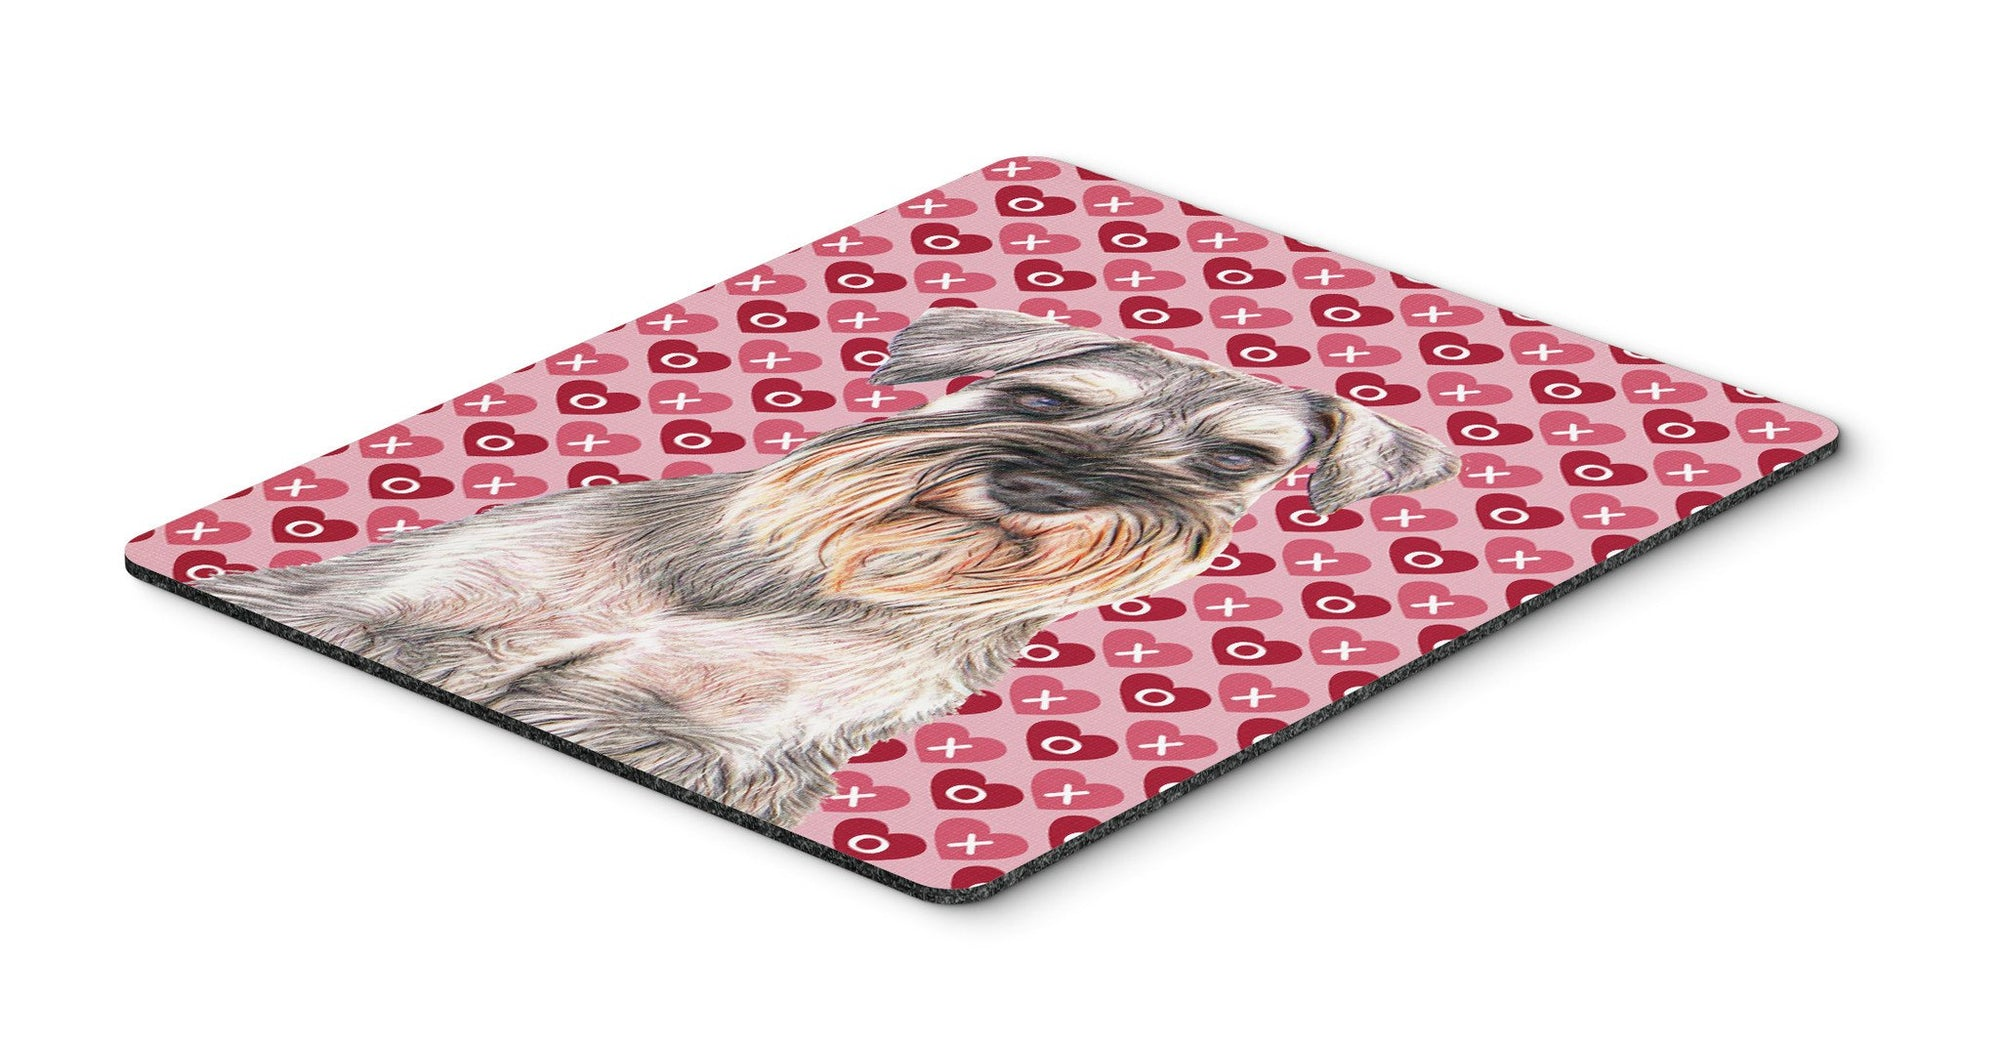 Hearts Love and Valentine's Day Schnauzer Mouse Pad, Hot Pad or Trivet KJ1193MP by Caroline's Treasures